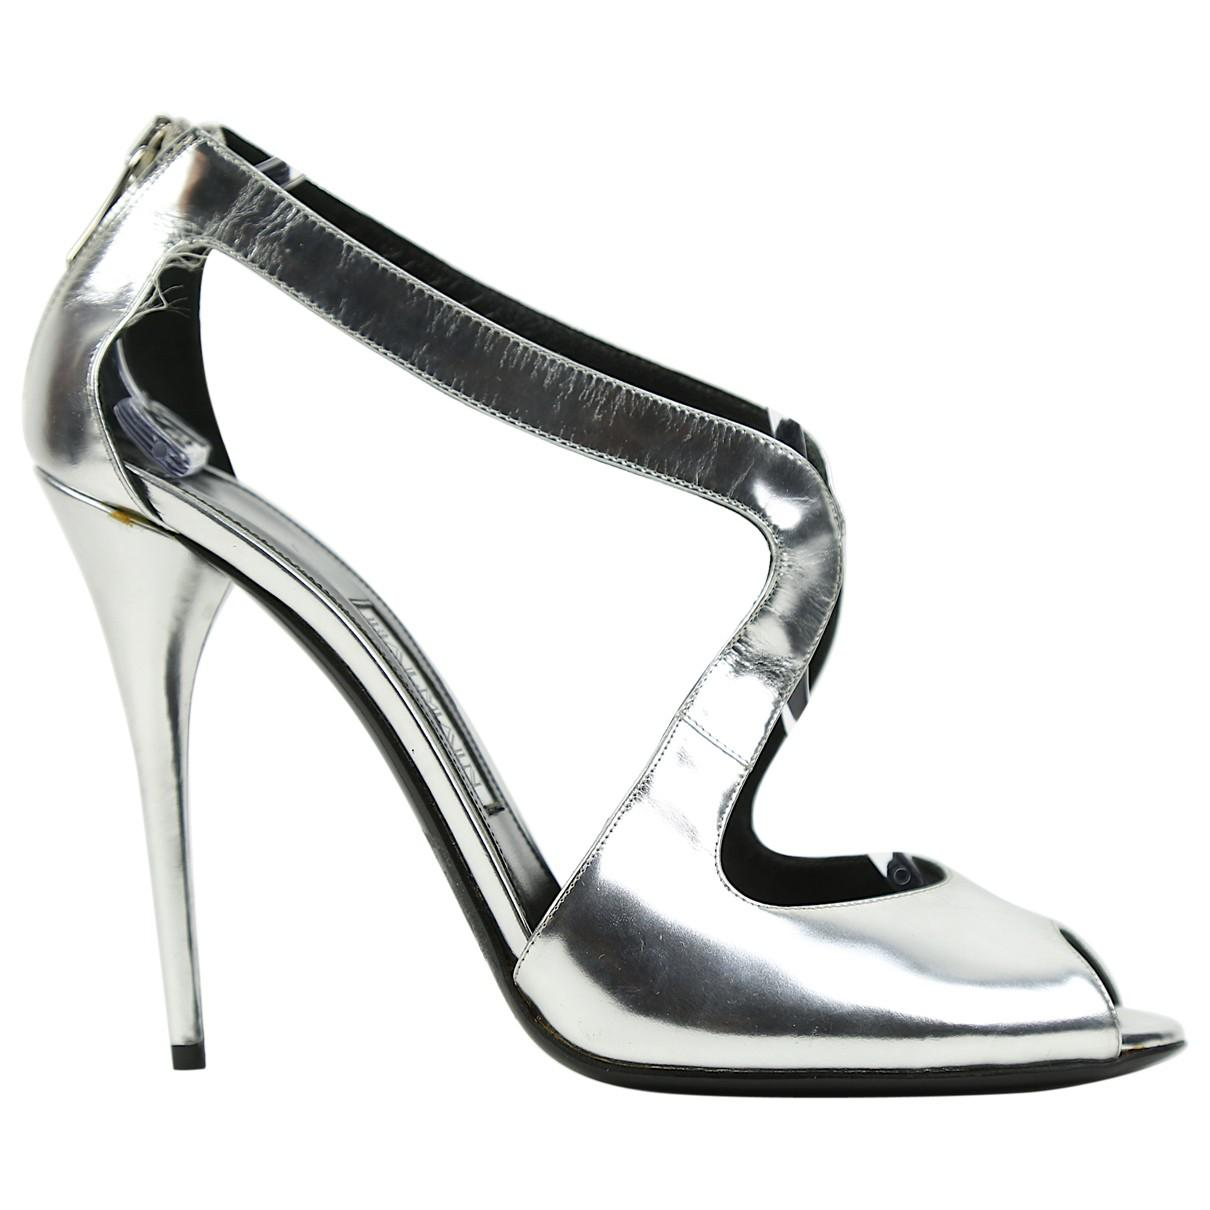 Pre-owned - Leather heels Balmain Clearance Great Deals tkPSU